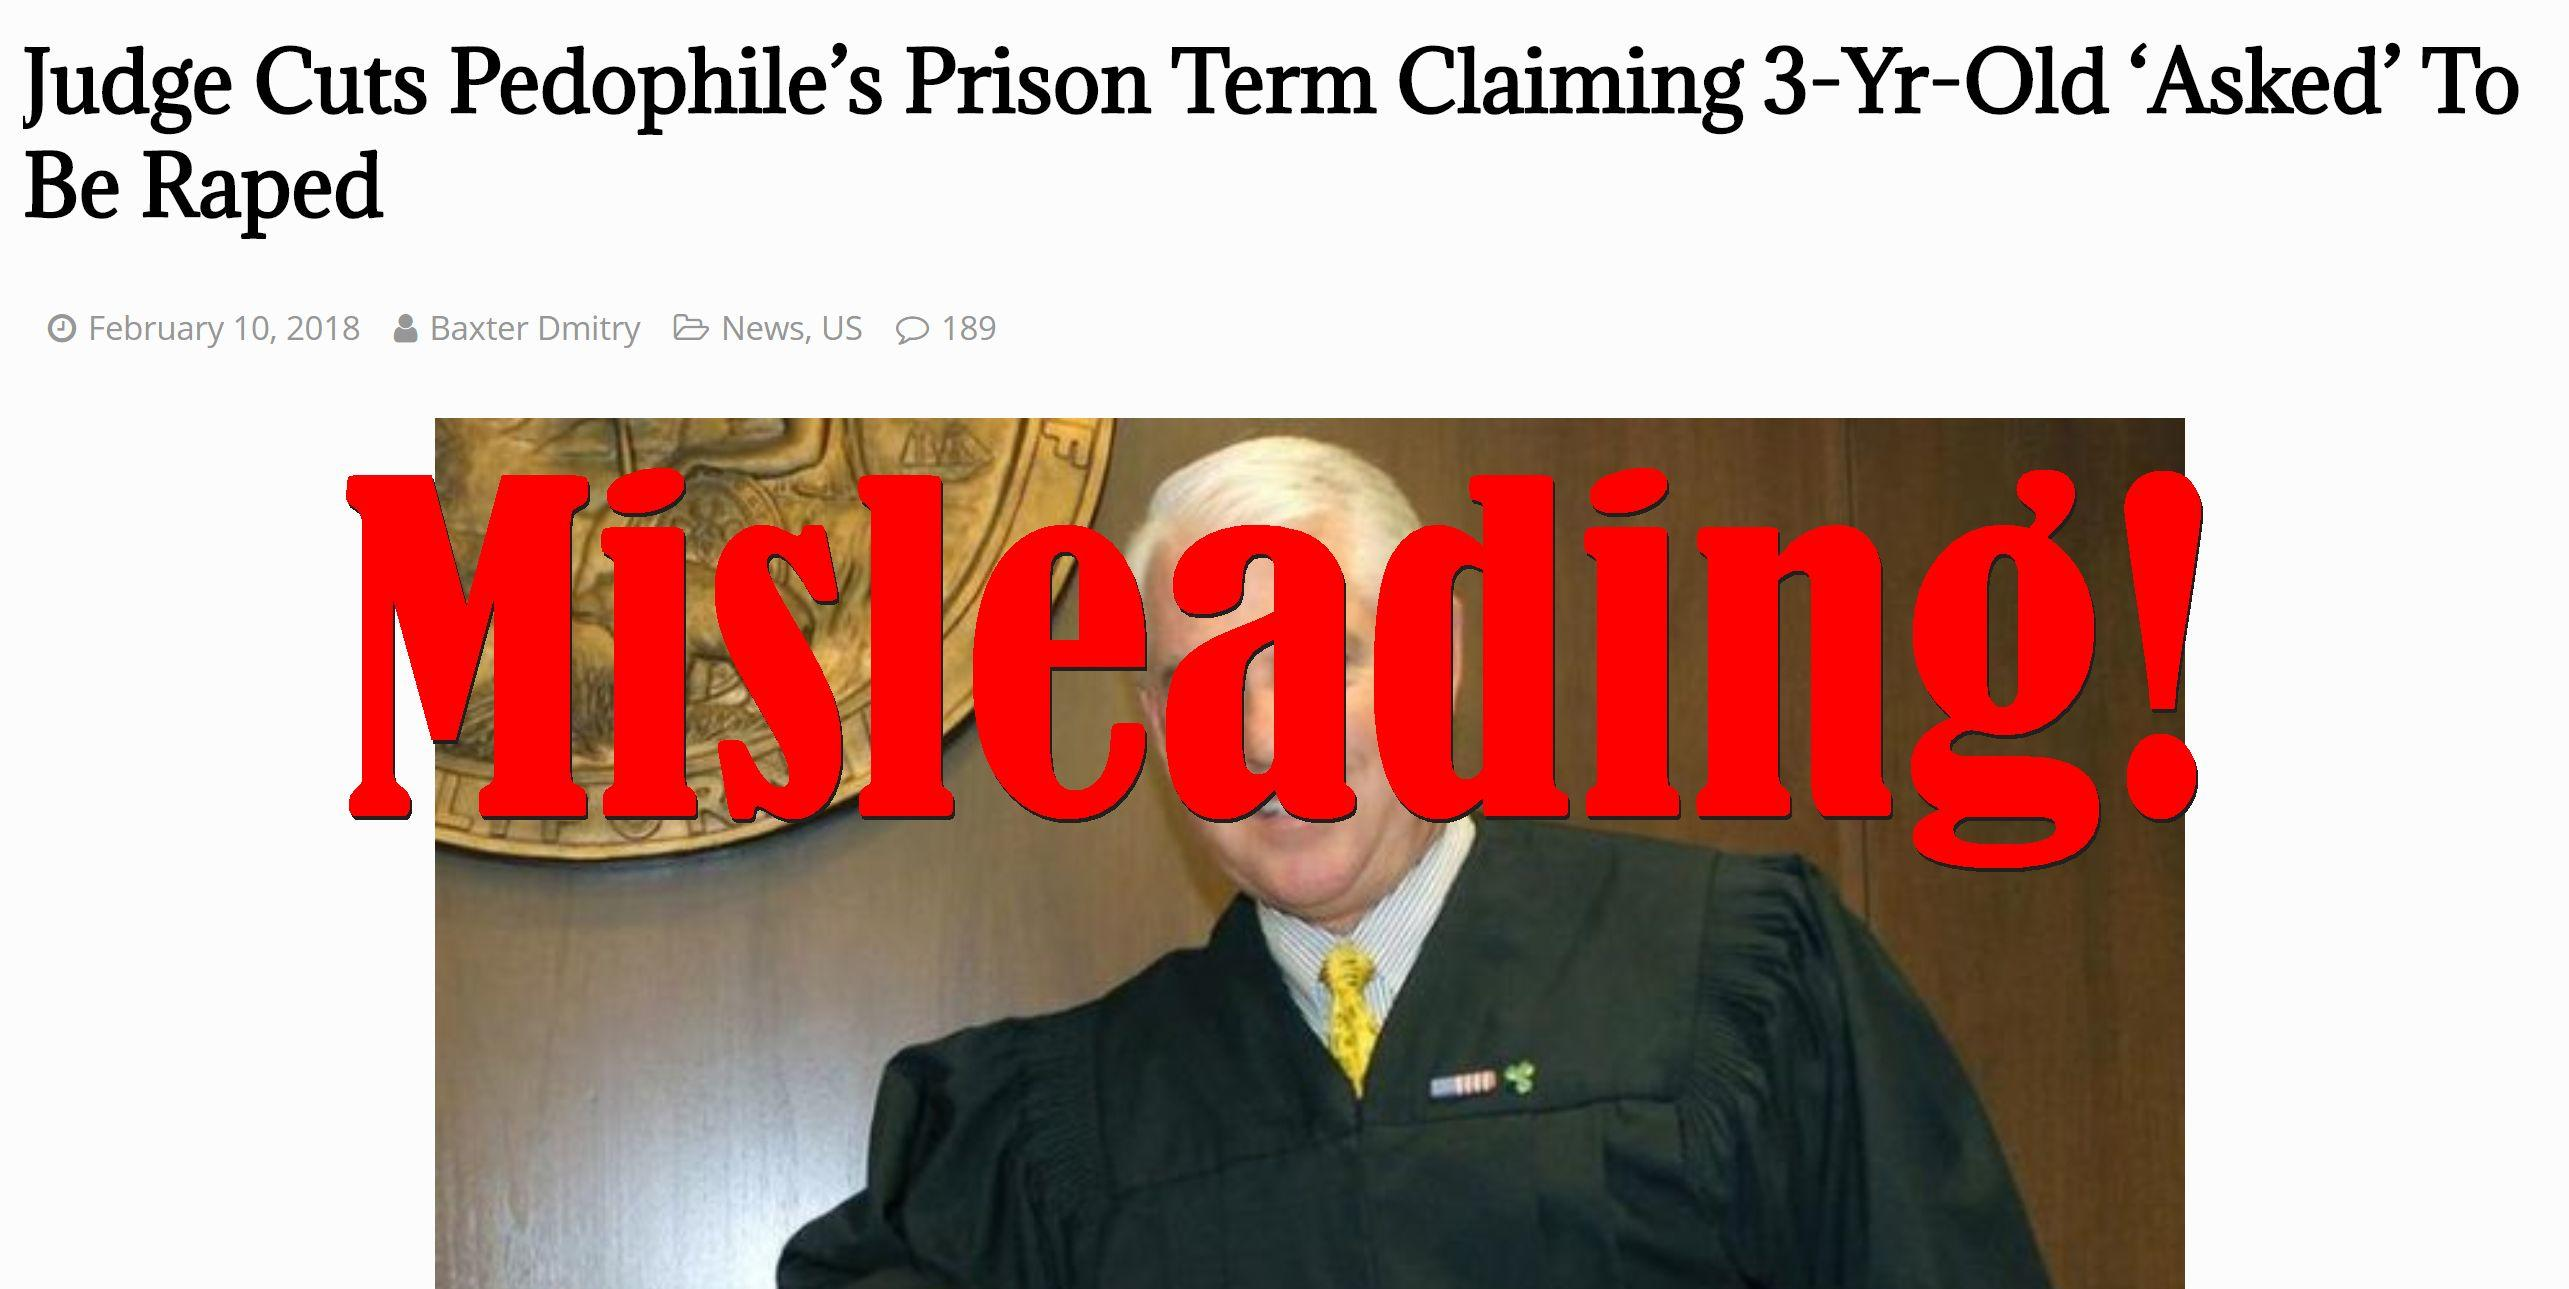 Fake News: Judge Did NOT Cut Pedophile's Prison Term Claiming 3-Yr-Old Asked To Be Raped